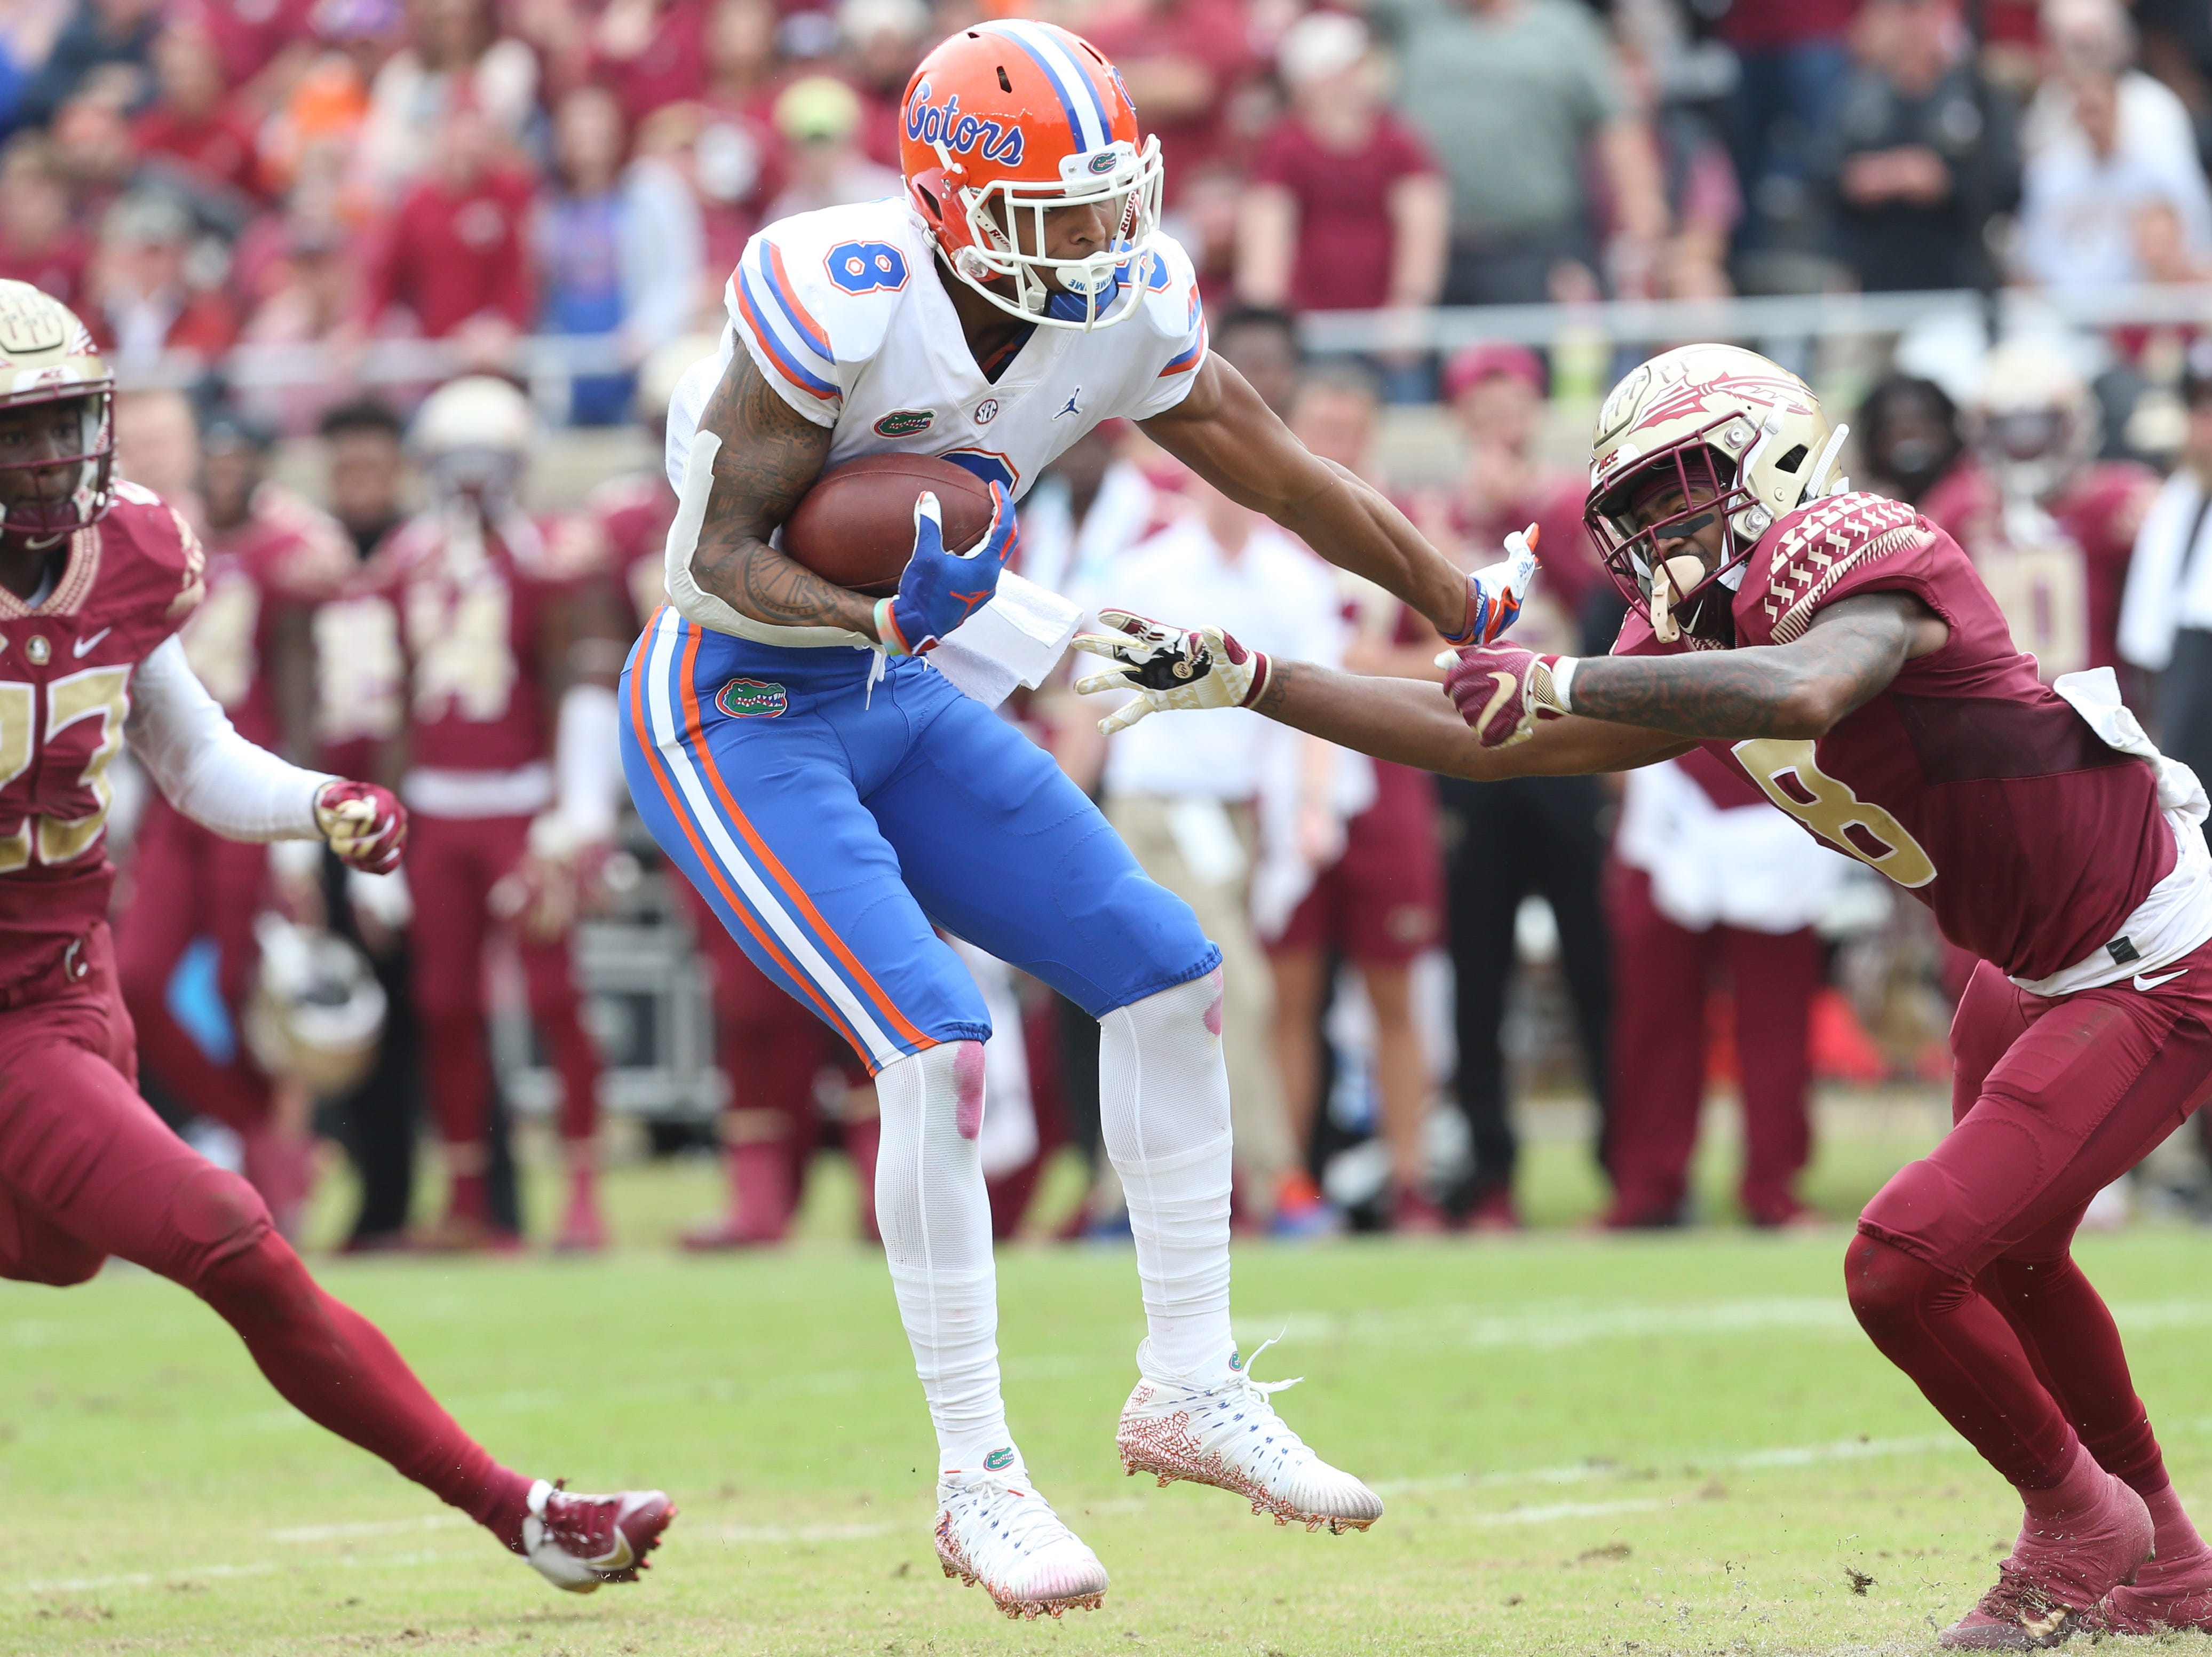 Florida Gators wide receiver Trevon Grimes (8) tries to dodge Florida State Seminoles defensive back Stanford Samuels III (8) as the Florida State Seminoles take on their rival the Florida Gators in college football at Doak S. Campbell Stadium, Saturday, Nov. 24, 2018.